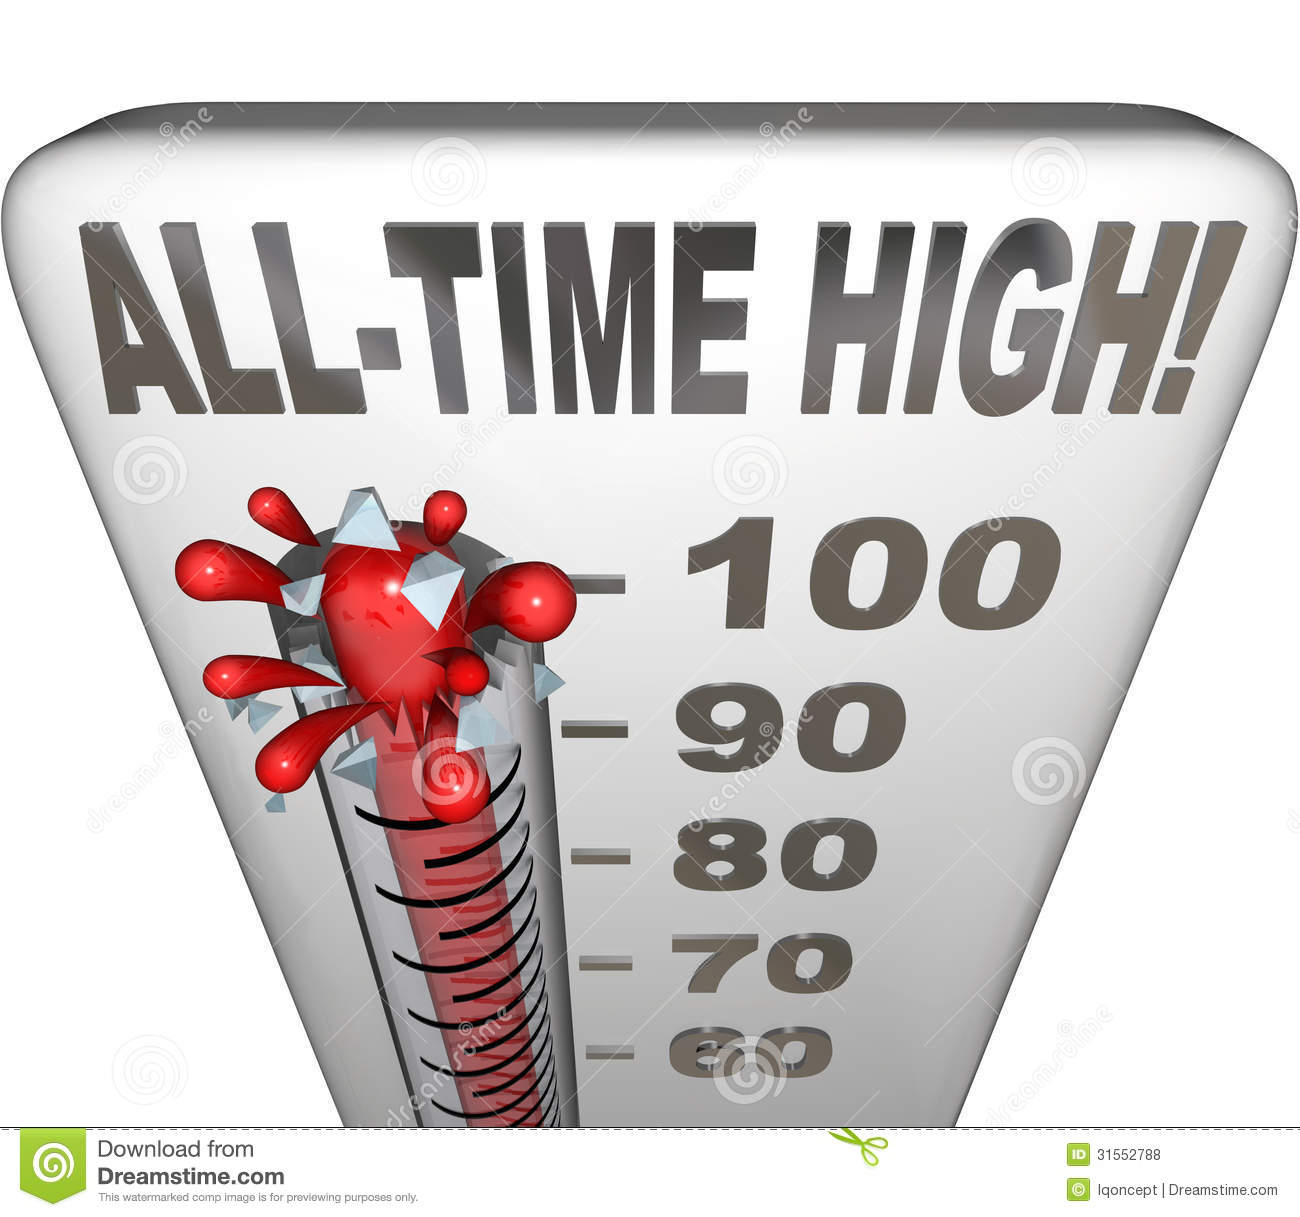 All-Time High Record Breaker Thermometer Hot Heat Score ...